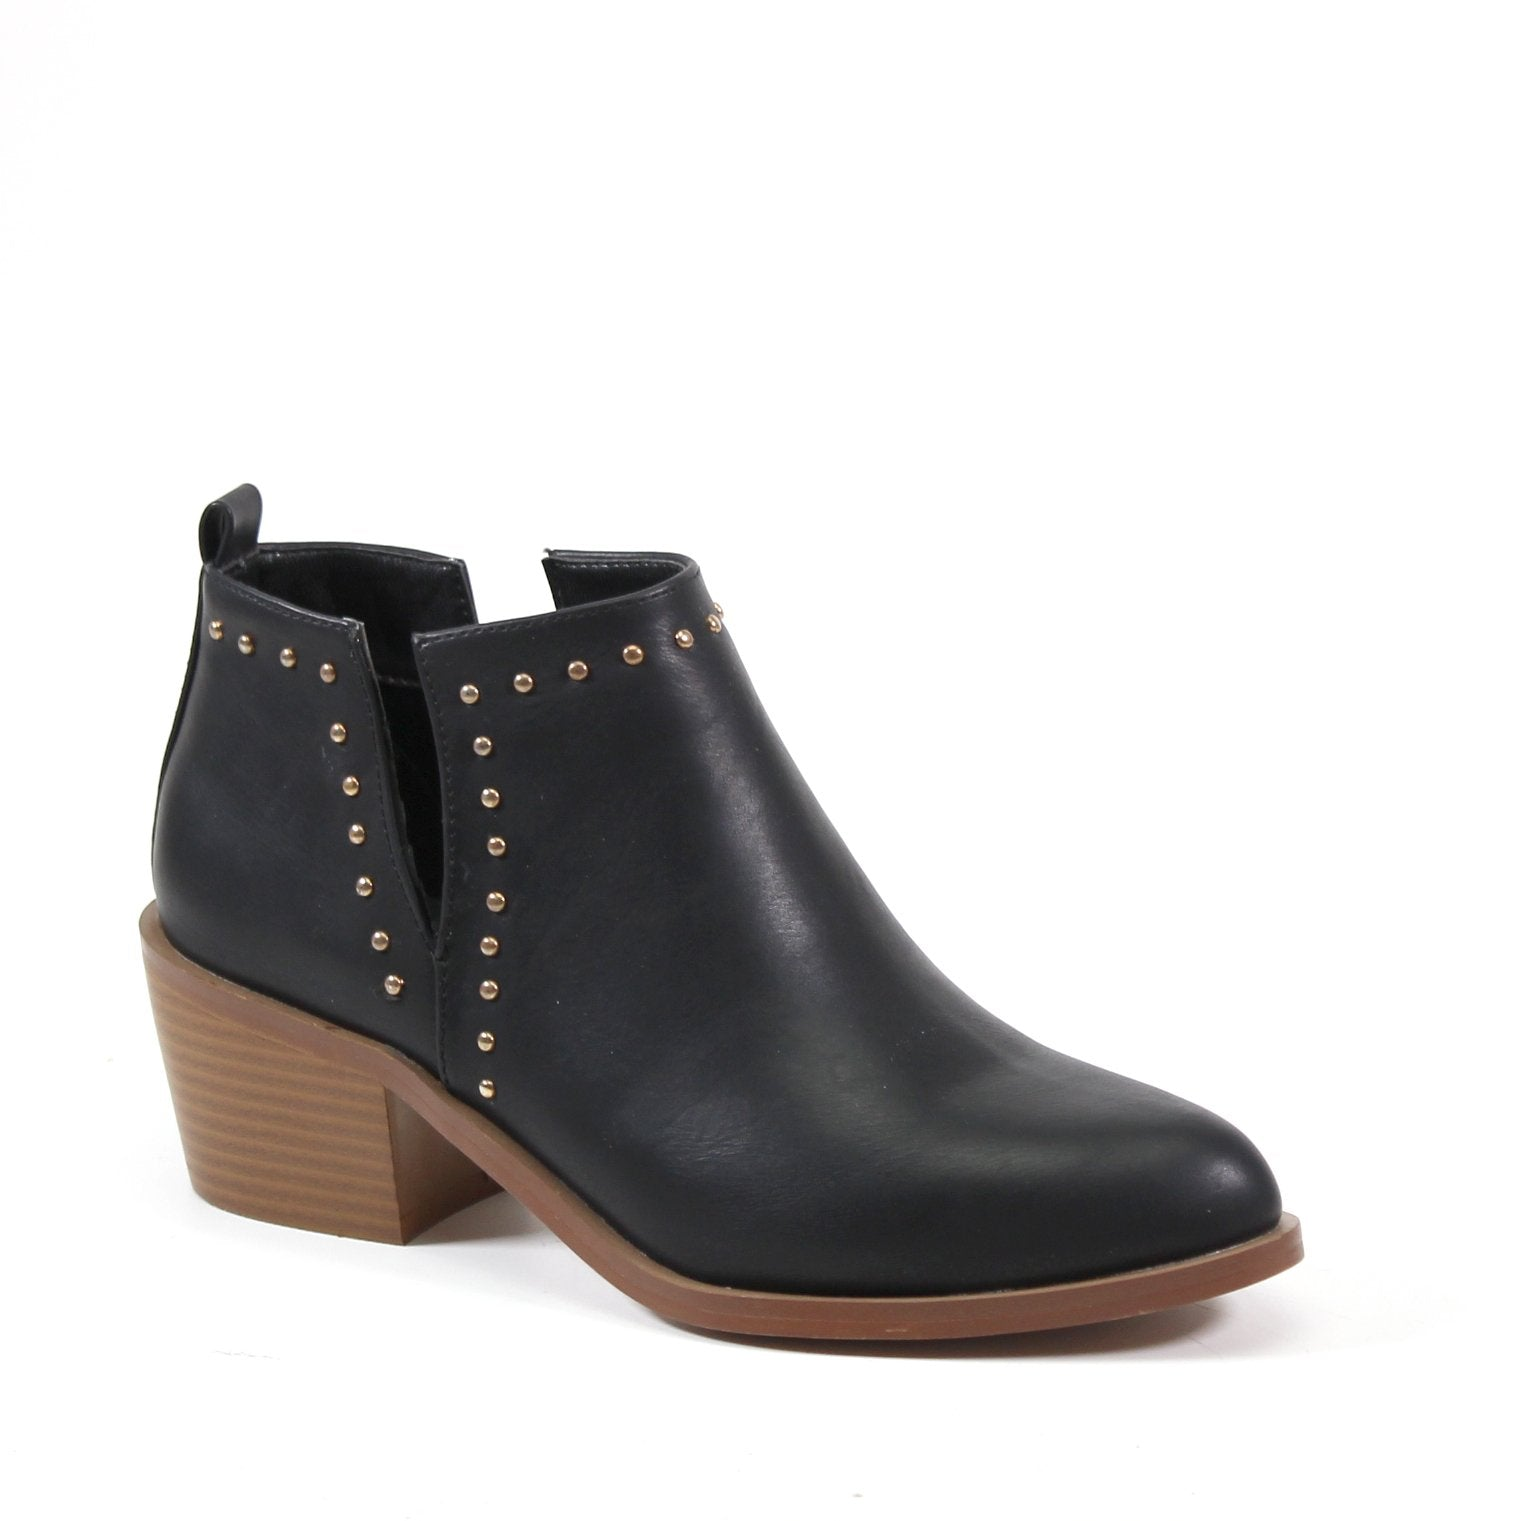 A studded dual V-Cut bootie with a vegan leather upper and contrasting faux stacked heel. The studded detail follows the V-CUT design and extends along the topline. A pull-on entry complete with a  rear pull tab makes for a cool relaxed style with an almo